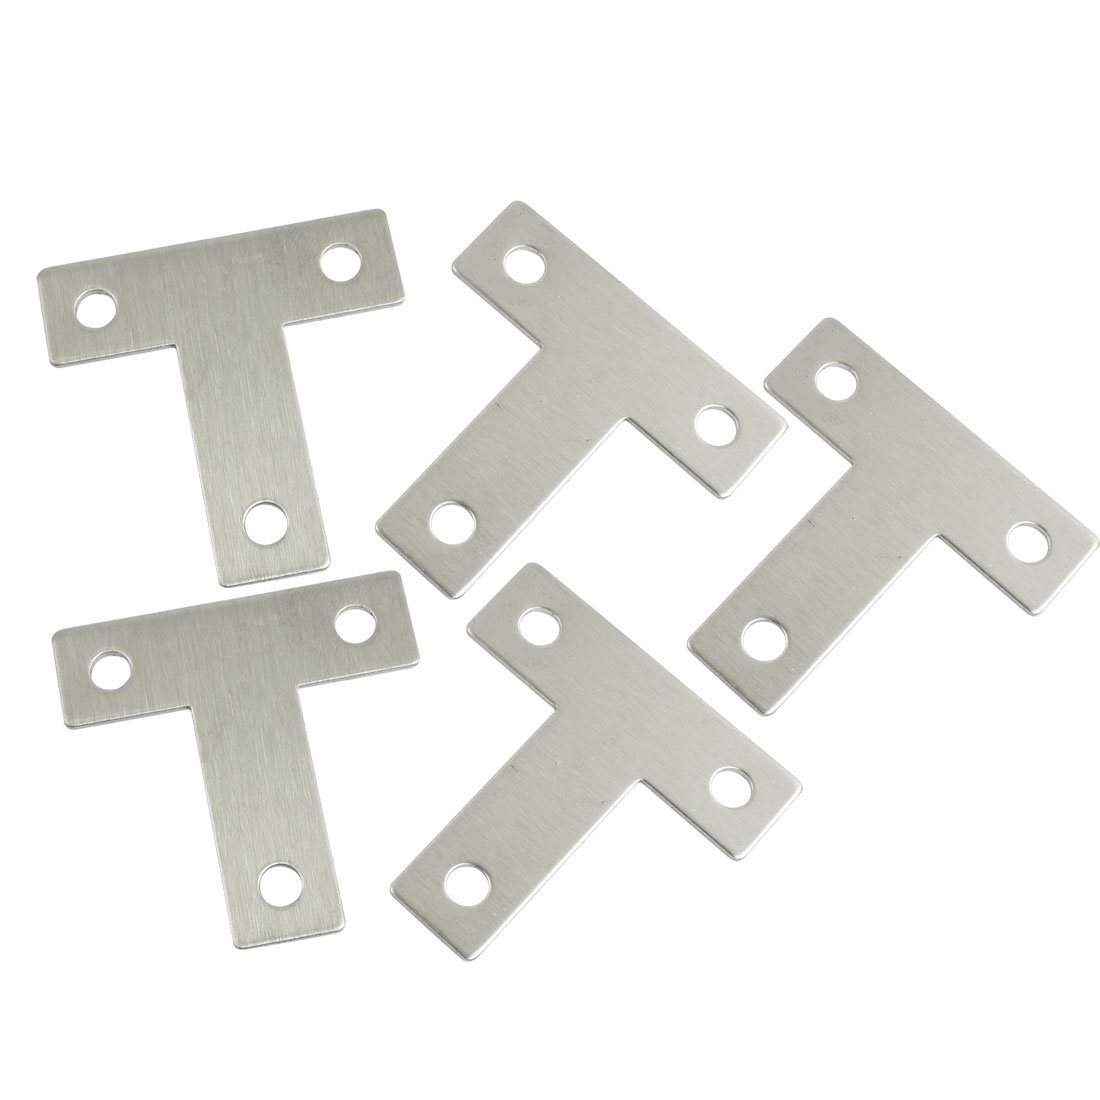 5 Pcs Angle Plate Corner Brace Flat T Shape Repair Bracket 10 pcs lot silver color metal corner brace right angle l shape bracket 20mm x 20mm home office furniture decoration accessories